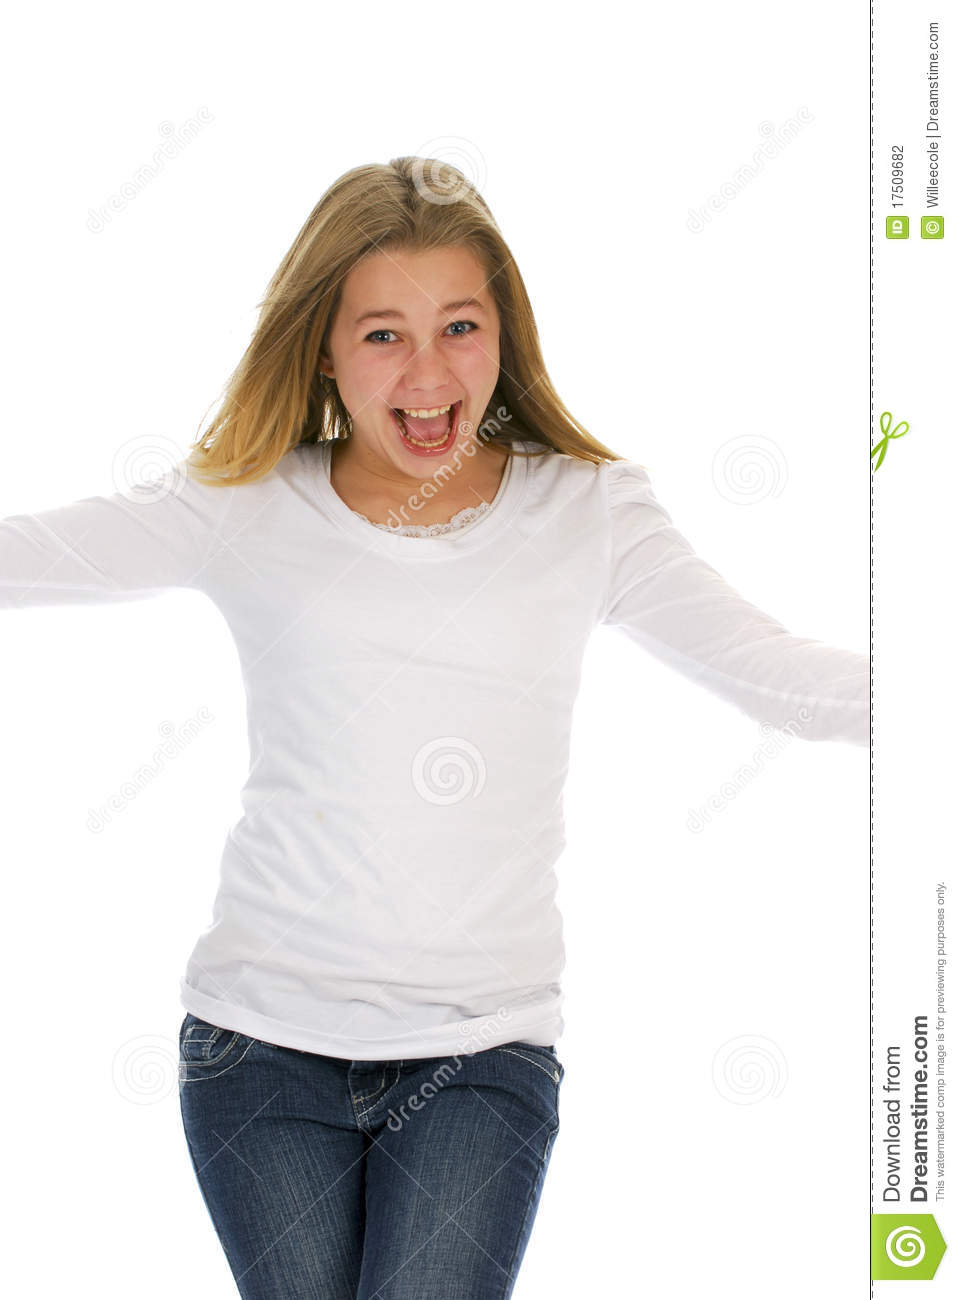 Happy teenage girl with excited expression on white background.